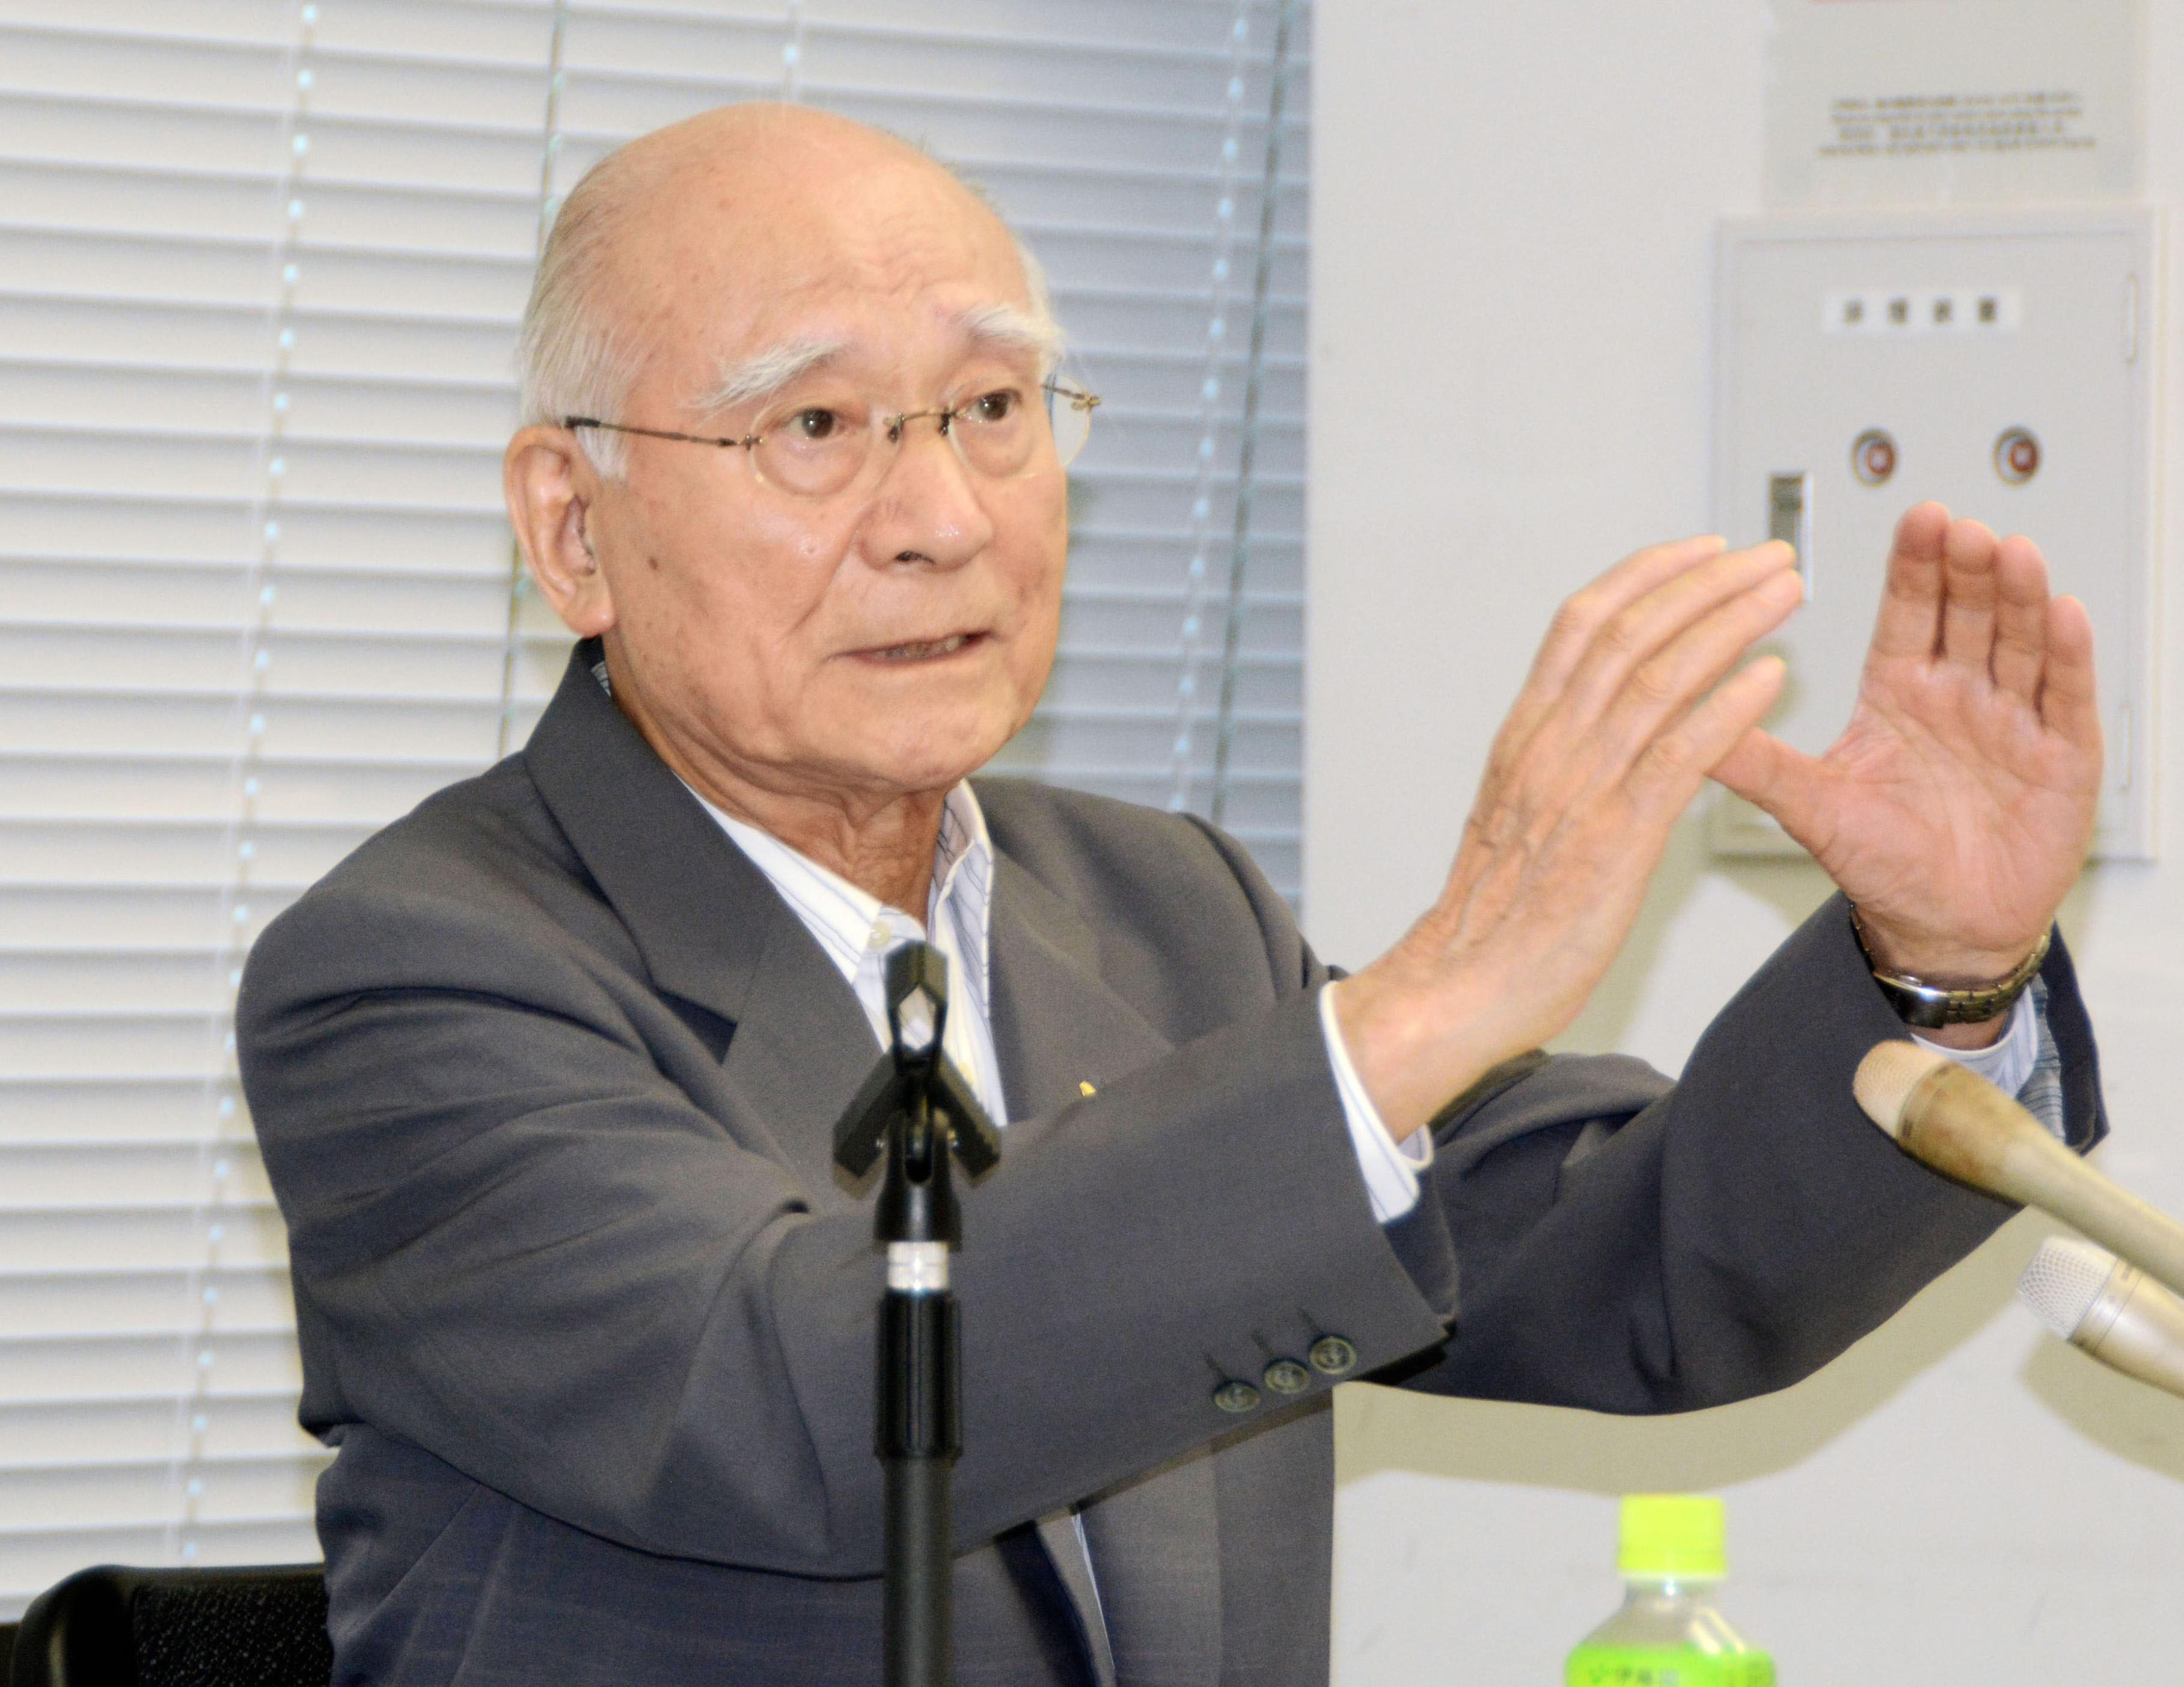 Yoshitoshi Fukahori, an 86-year-old survivor of the 1945 atomic bombing of Nagasaki who has collecting and analyzed atomic bomb-related photos, speaks in the city on June 30.   KYODO